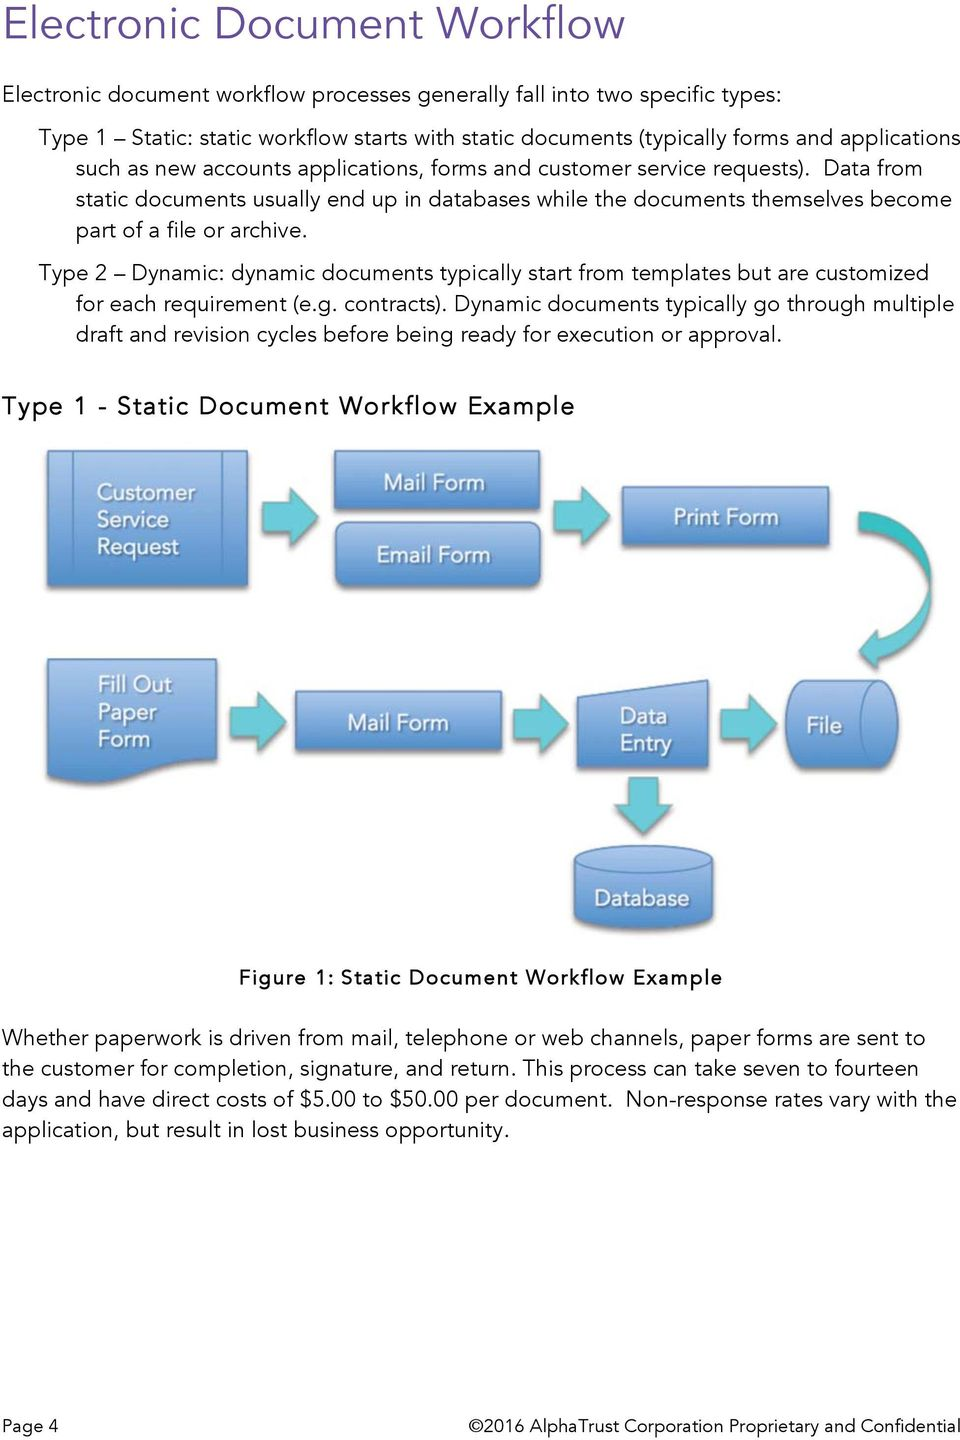 Data from static documents usually end up in databases while the documents themselves become part of a file or archive.